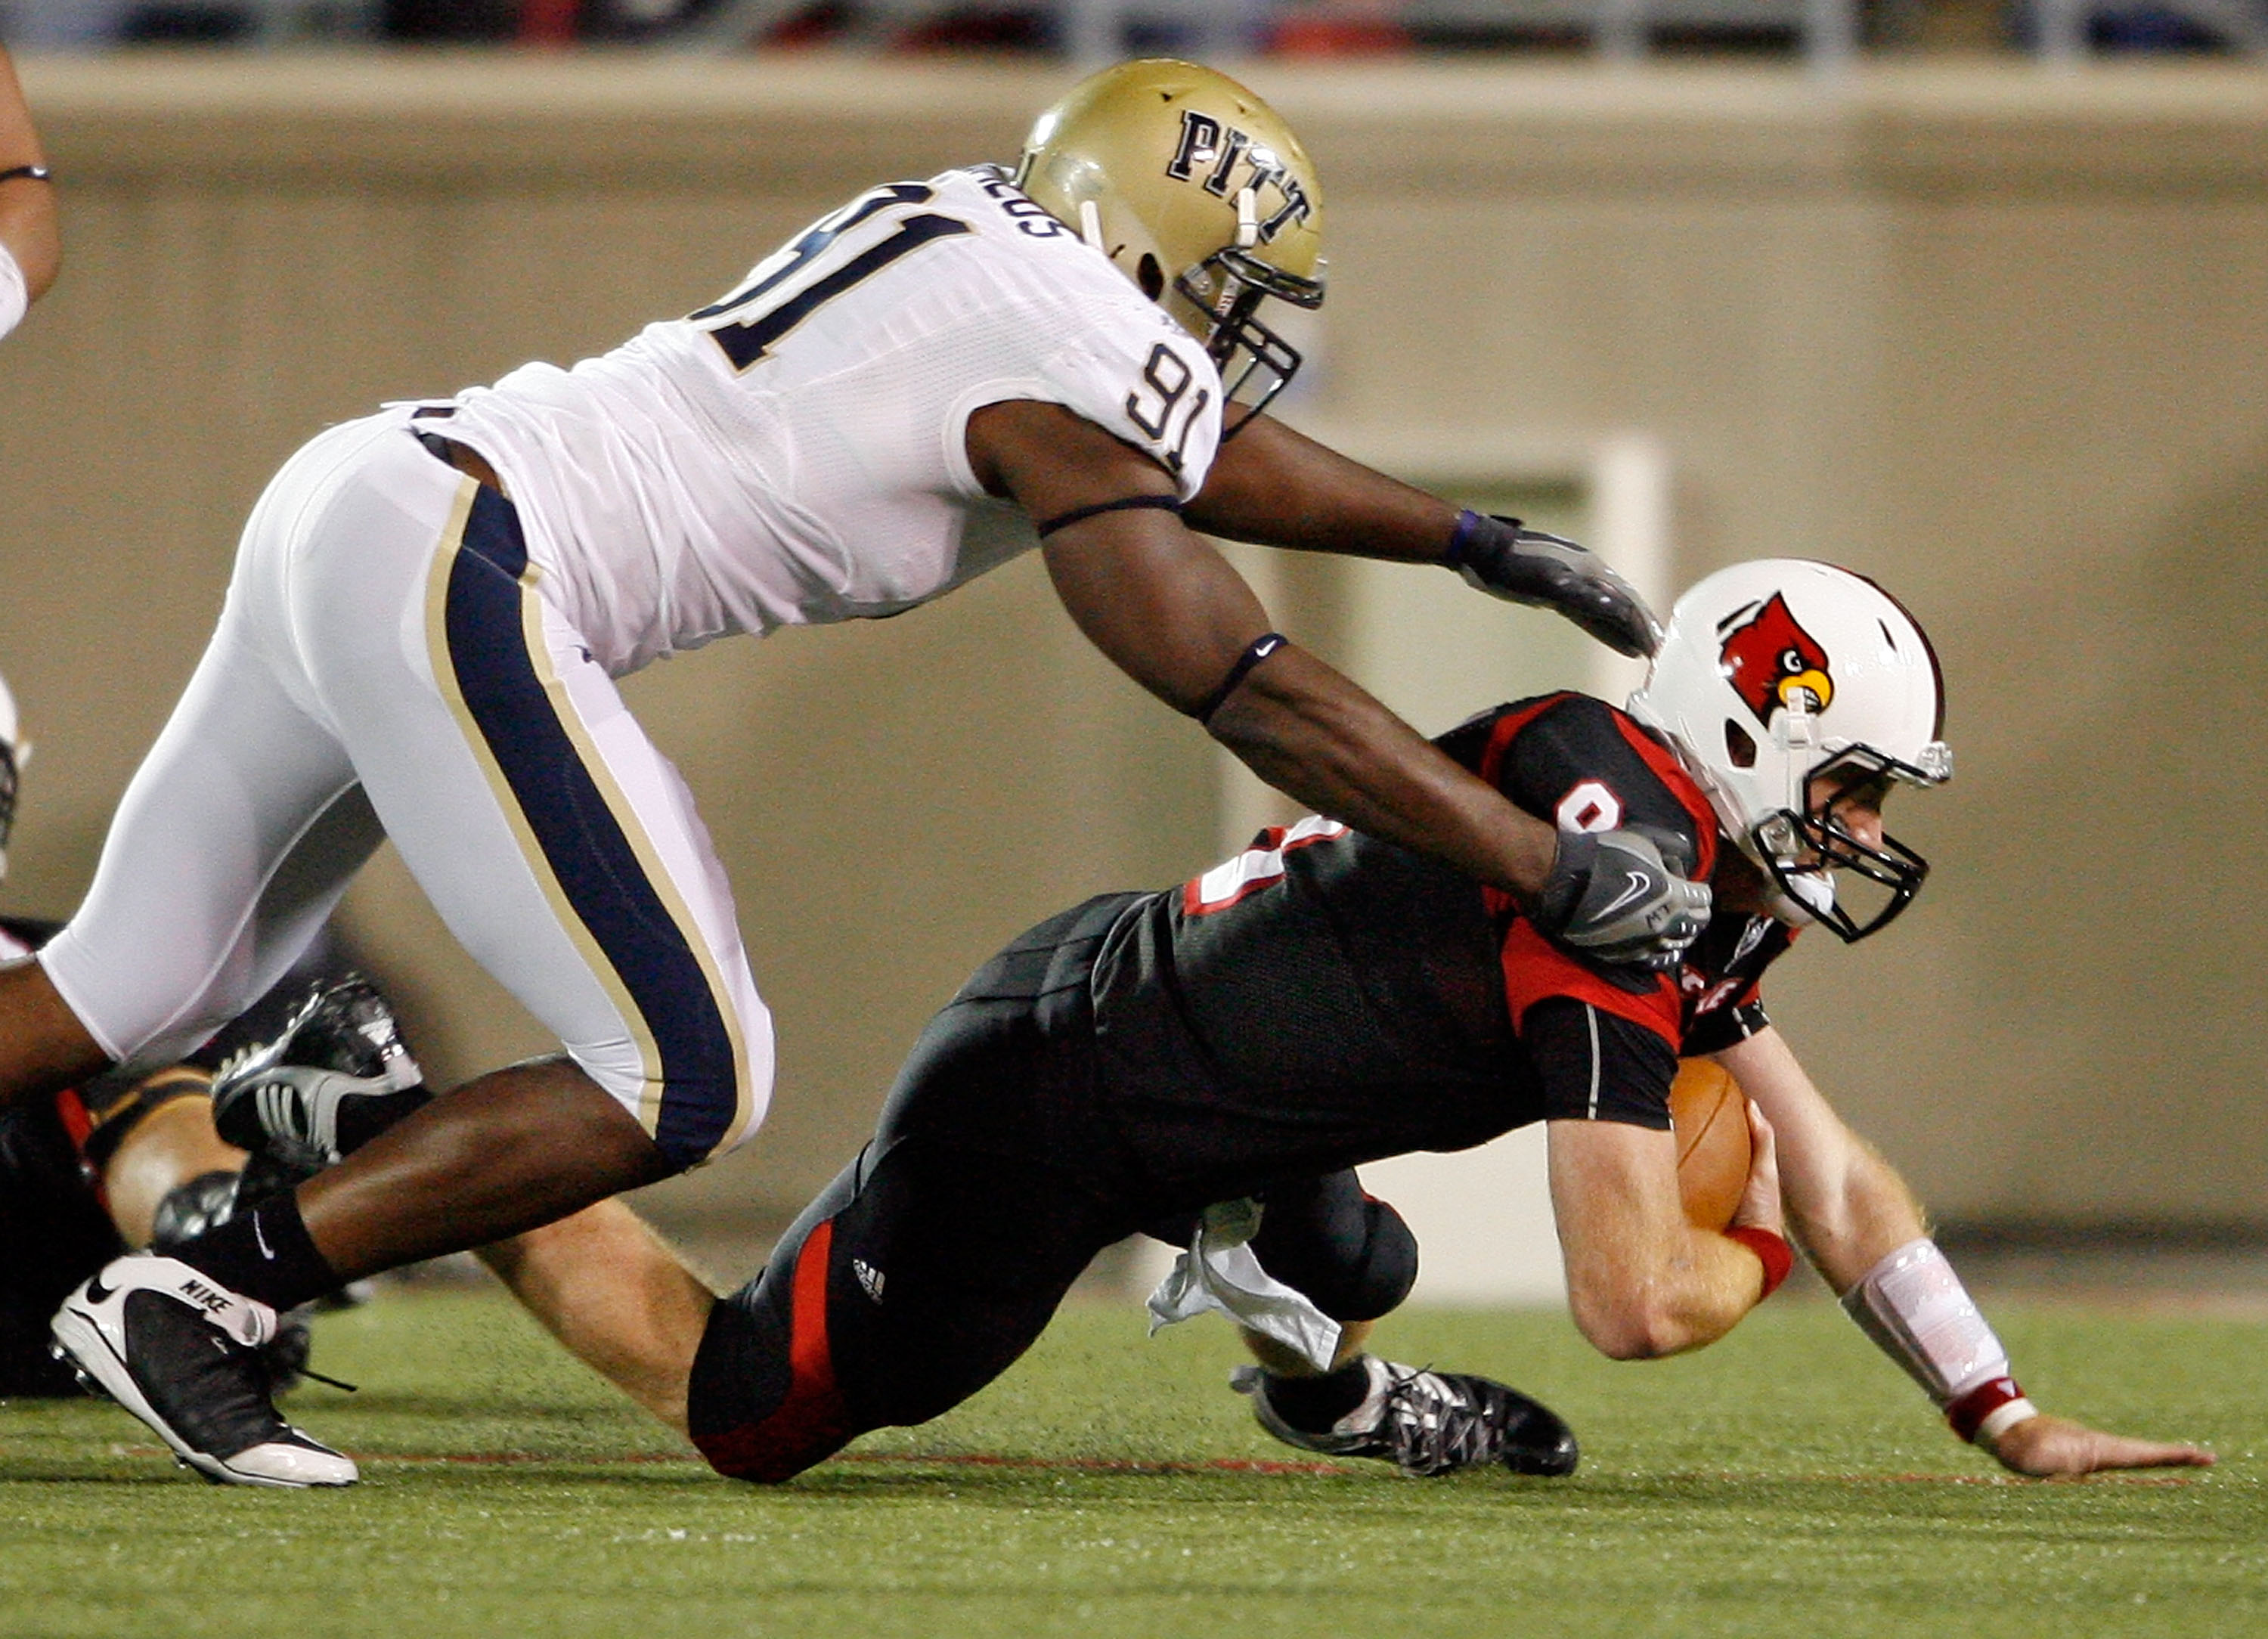 LOUISVILLE, KY - OCTOBER 02:  Adam Froman #9 of the Louisville Cardinals is sacked by Greg Romeus #91  of the Pittsburgh Panthers during the Big East Conference game at Papa John's Cardinal Stadium on October 2, 2009 in Louisville, Kentucky.  (Photo by An